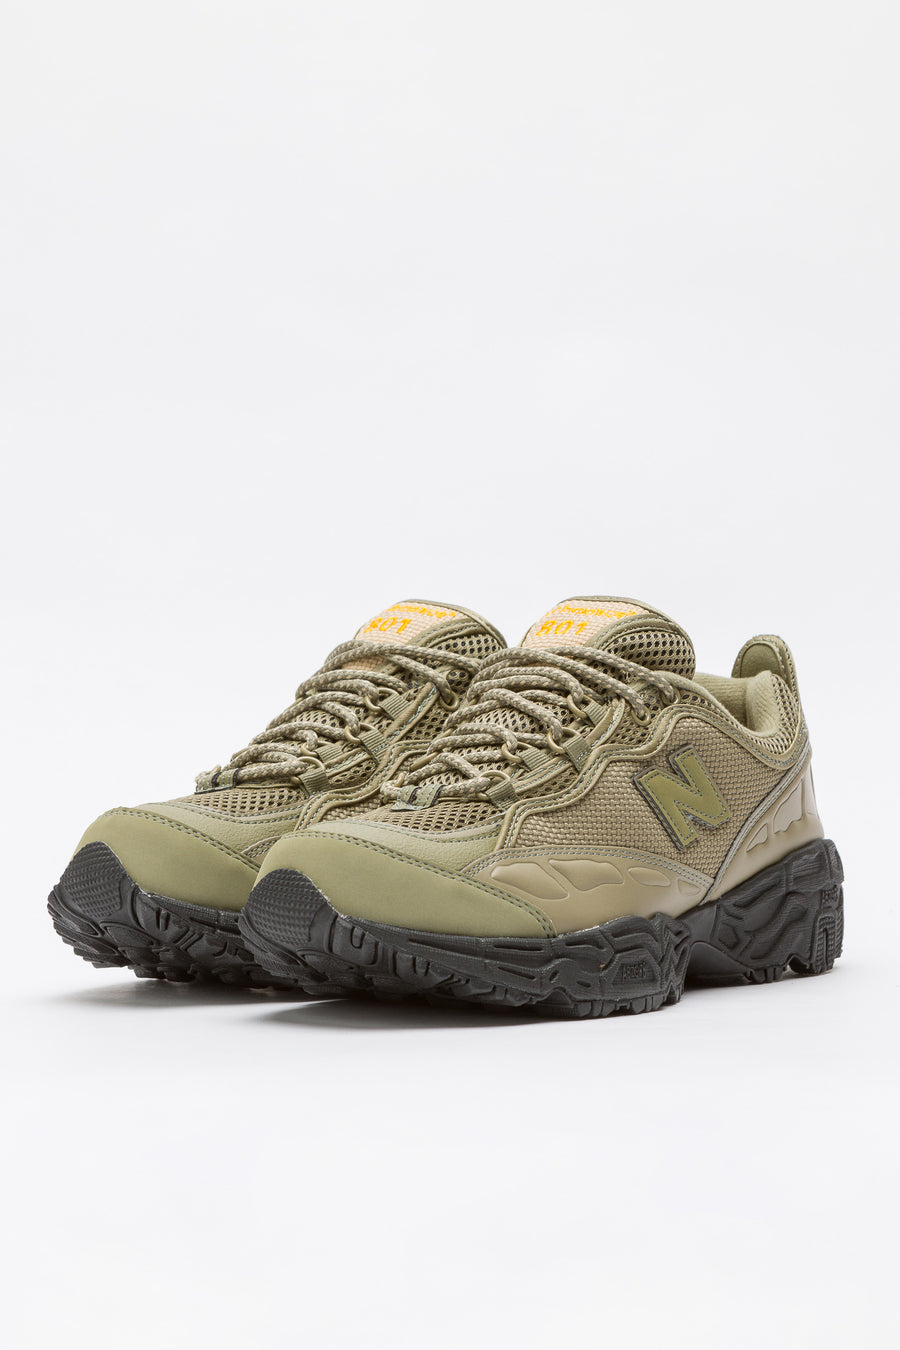 New Balance ML801BEB in Green/Black - Notre